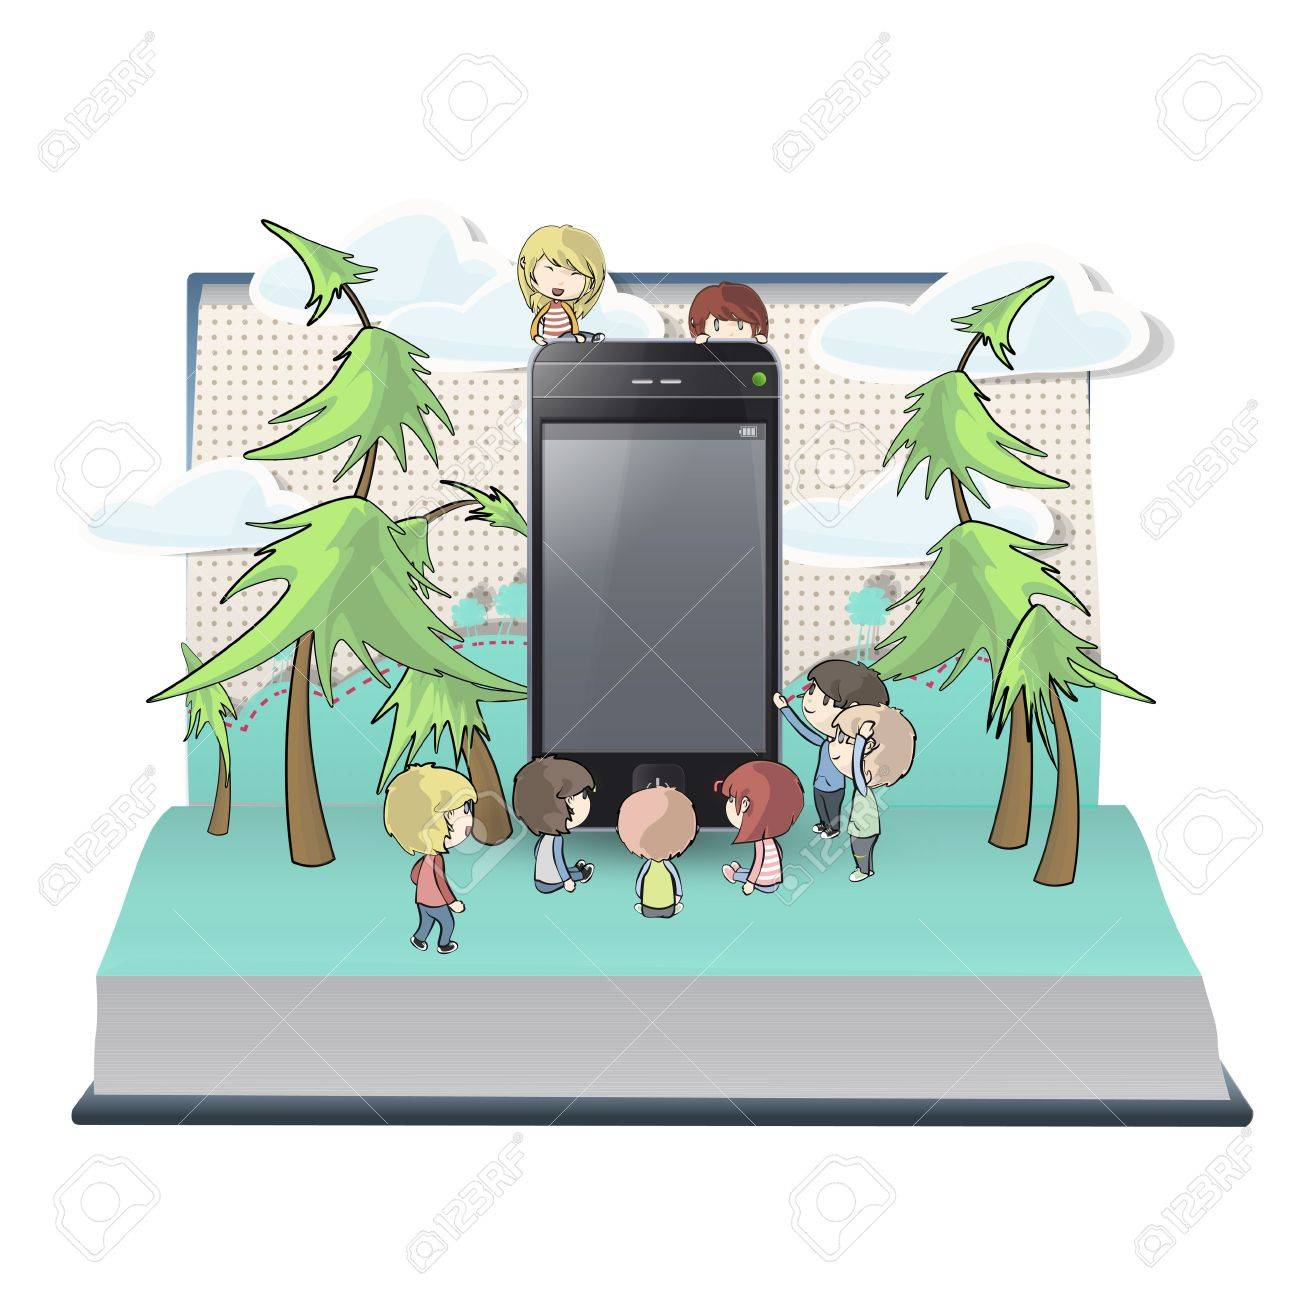 Many kids with phone inside a book. Vector design. Stock Vector - 17787062